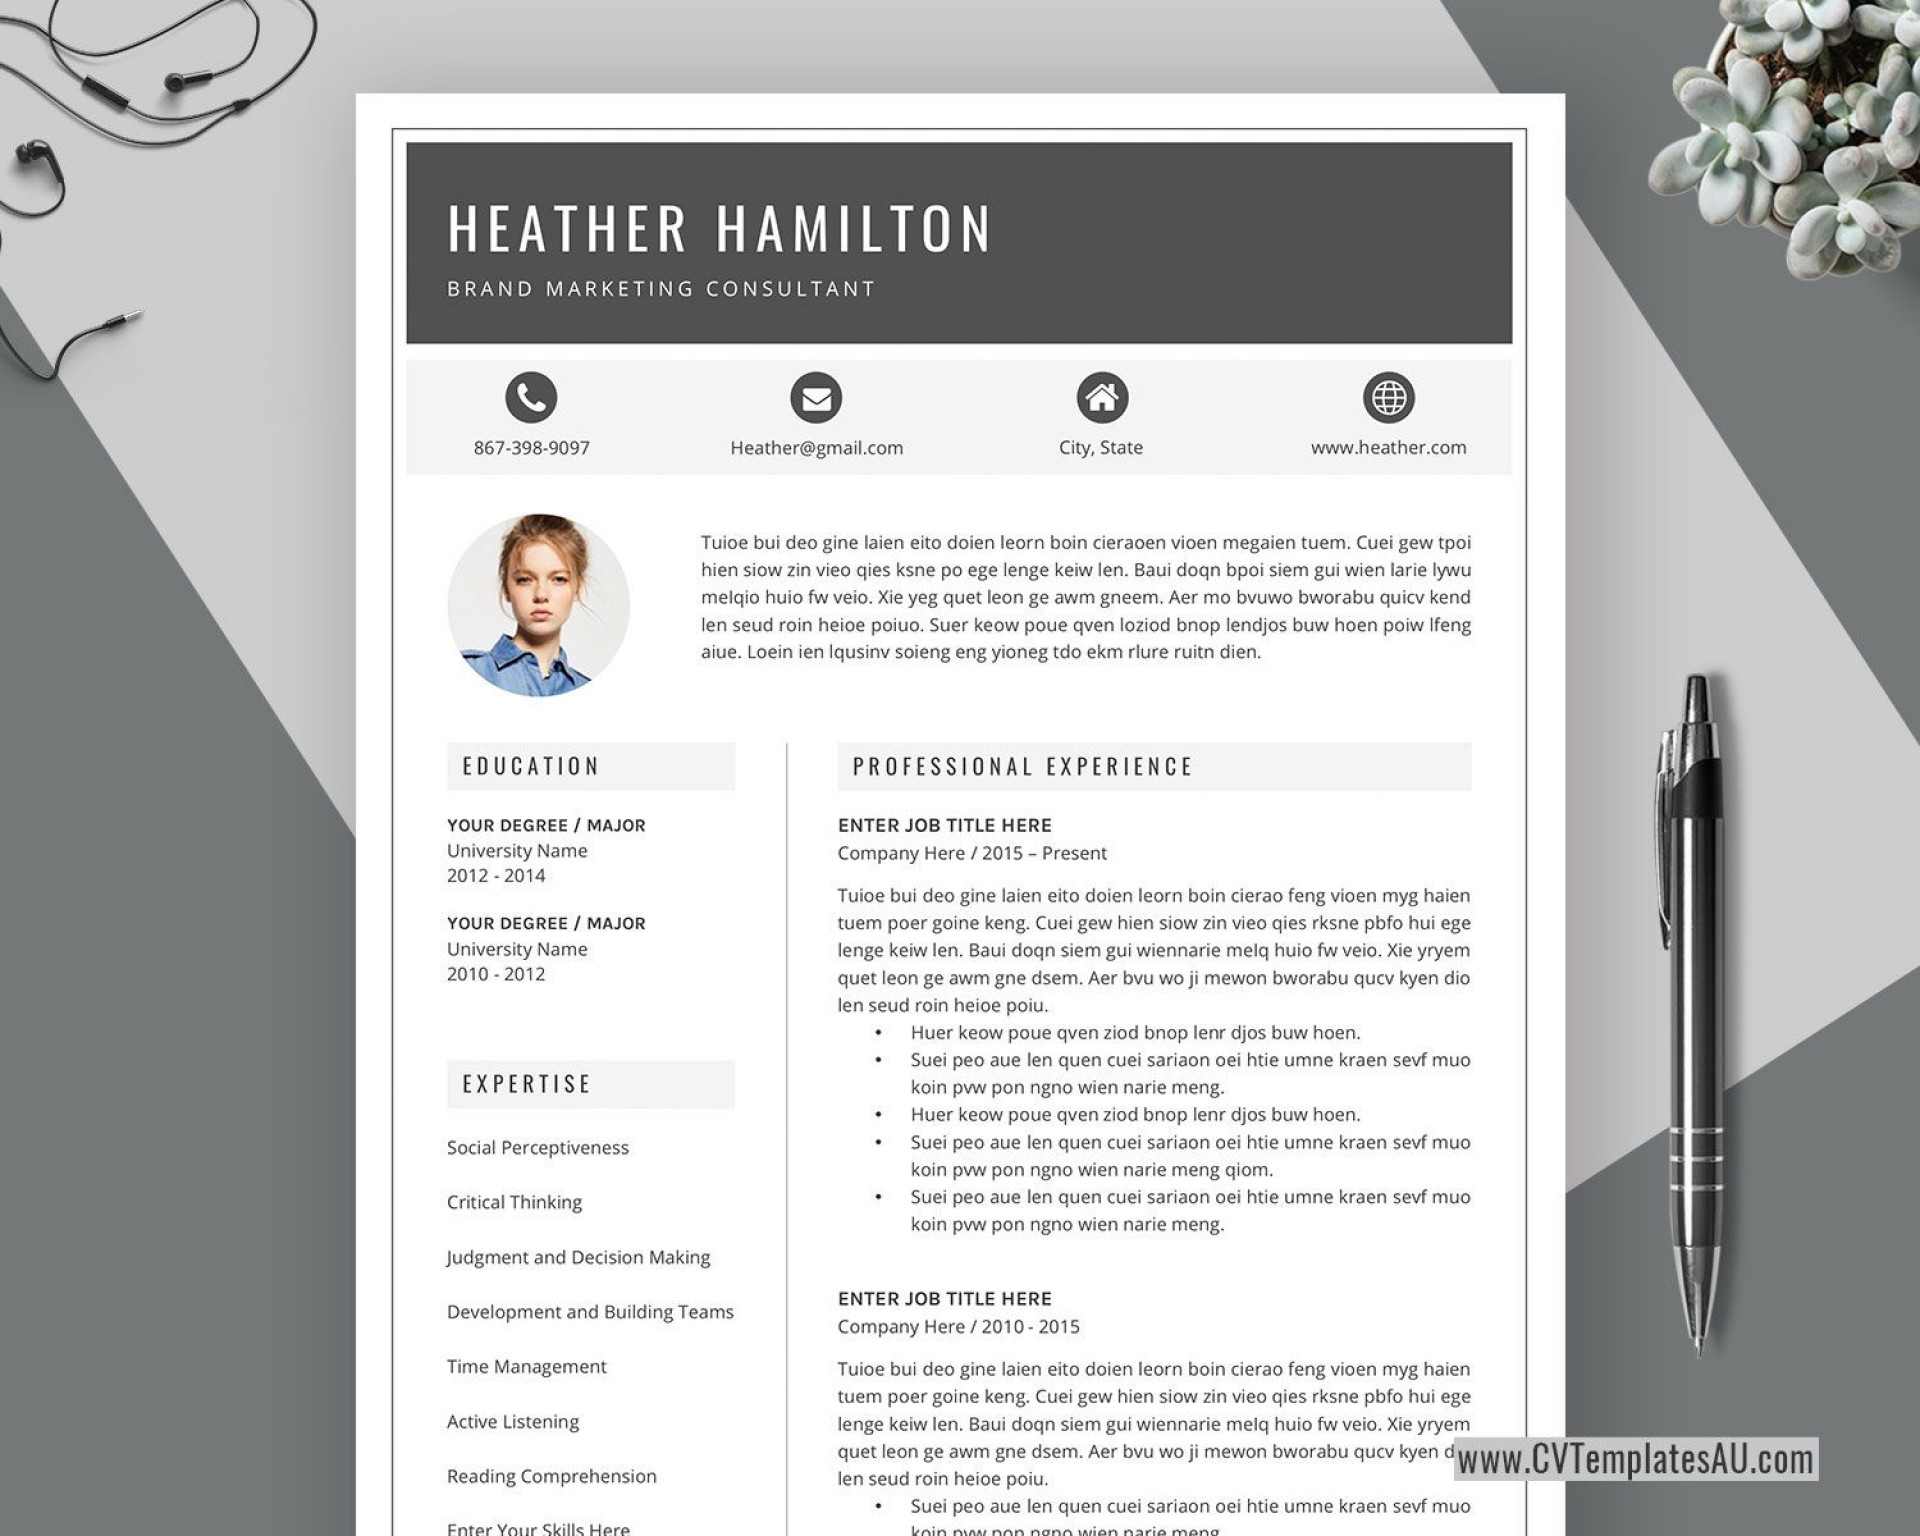 003 Awesome Curriculum Vitae Word Template Design  Templates Download M 2019 Cv Free1920